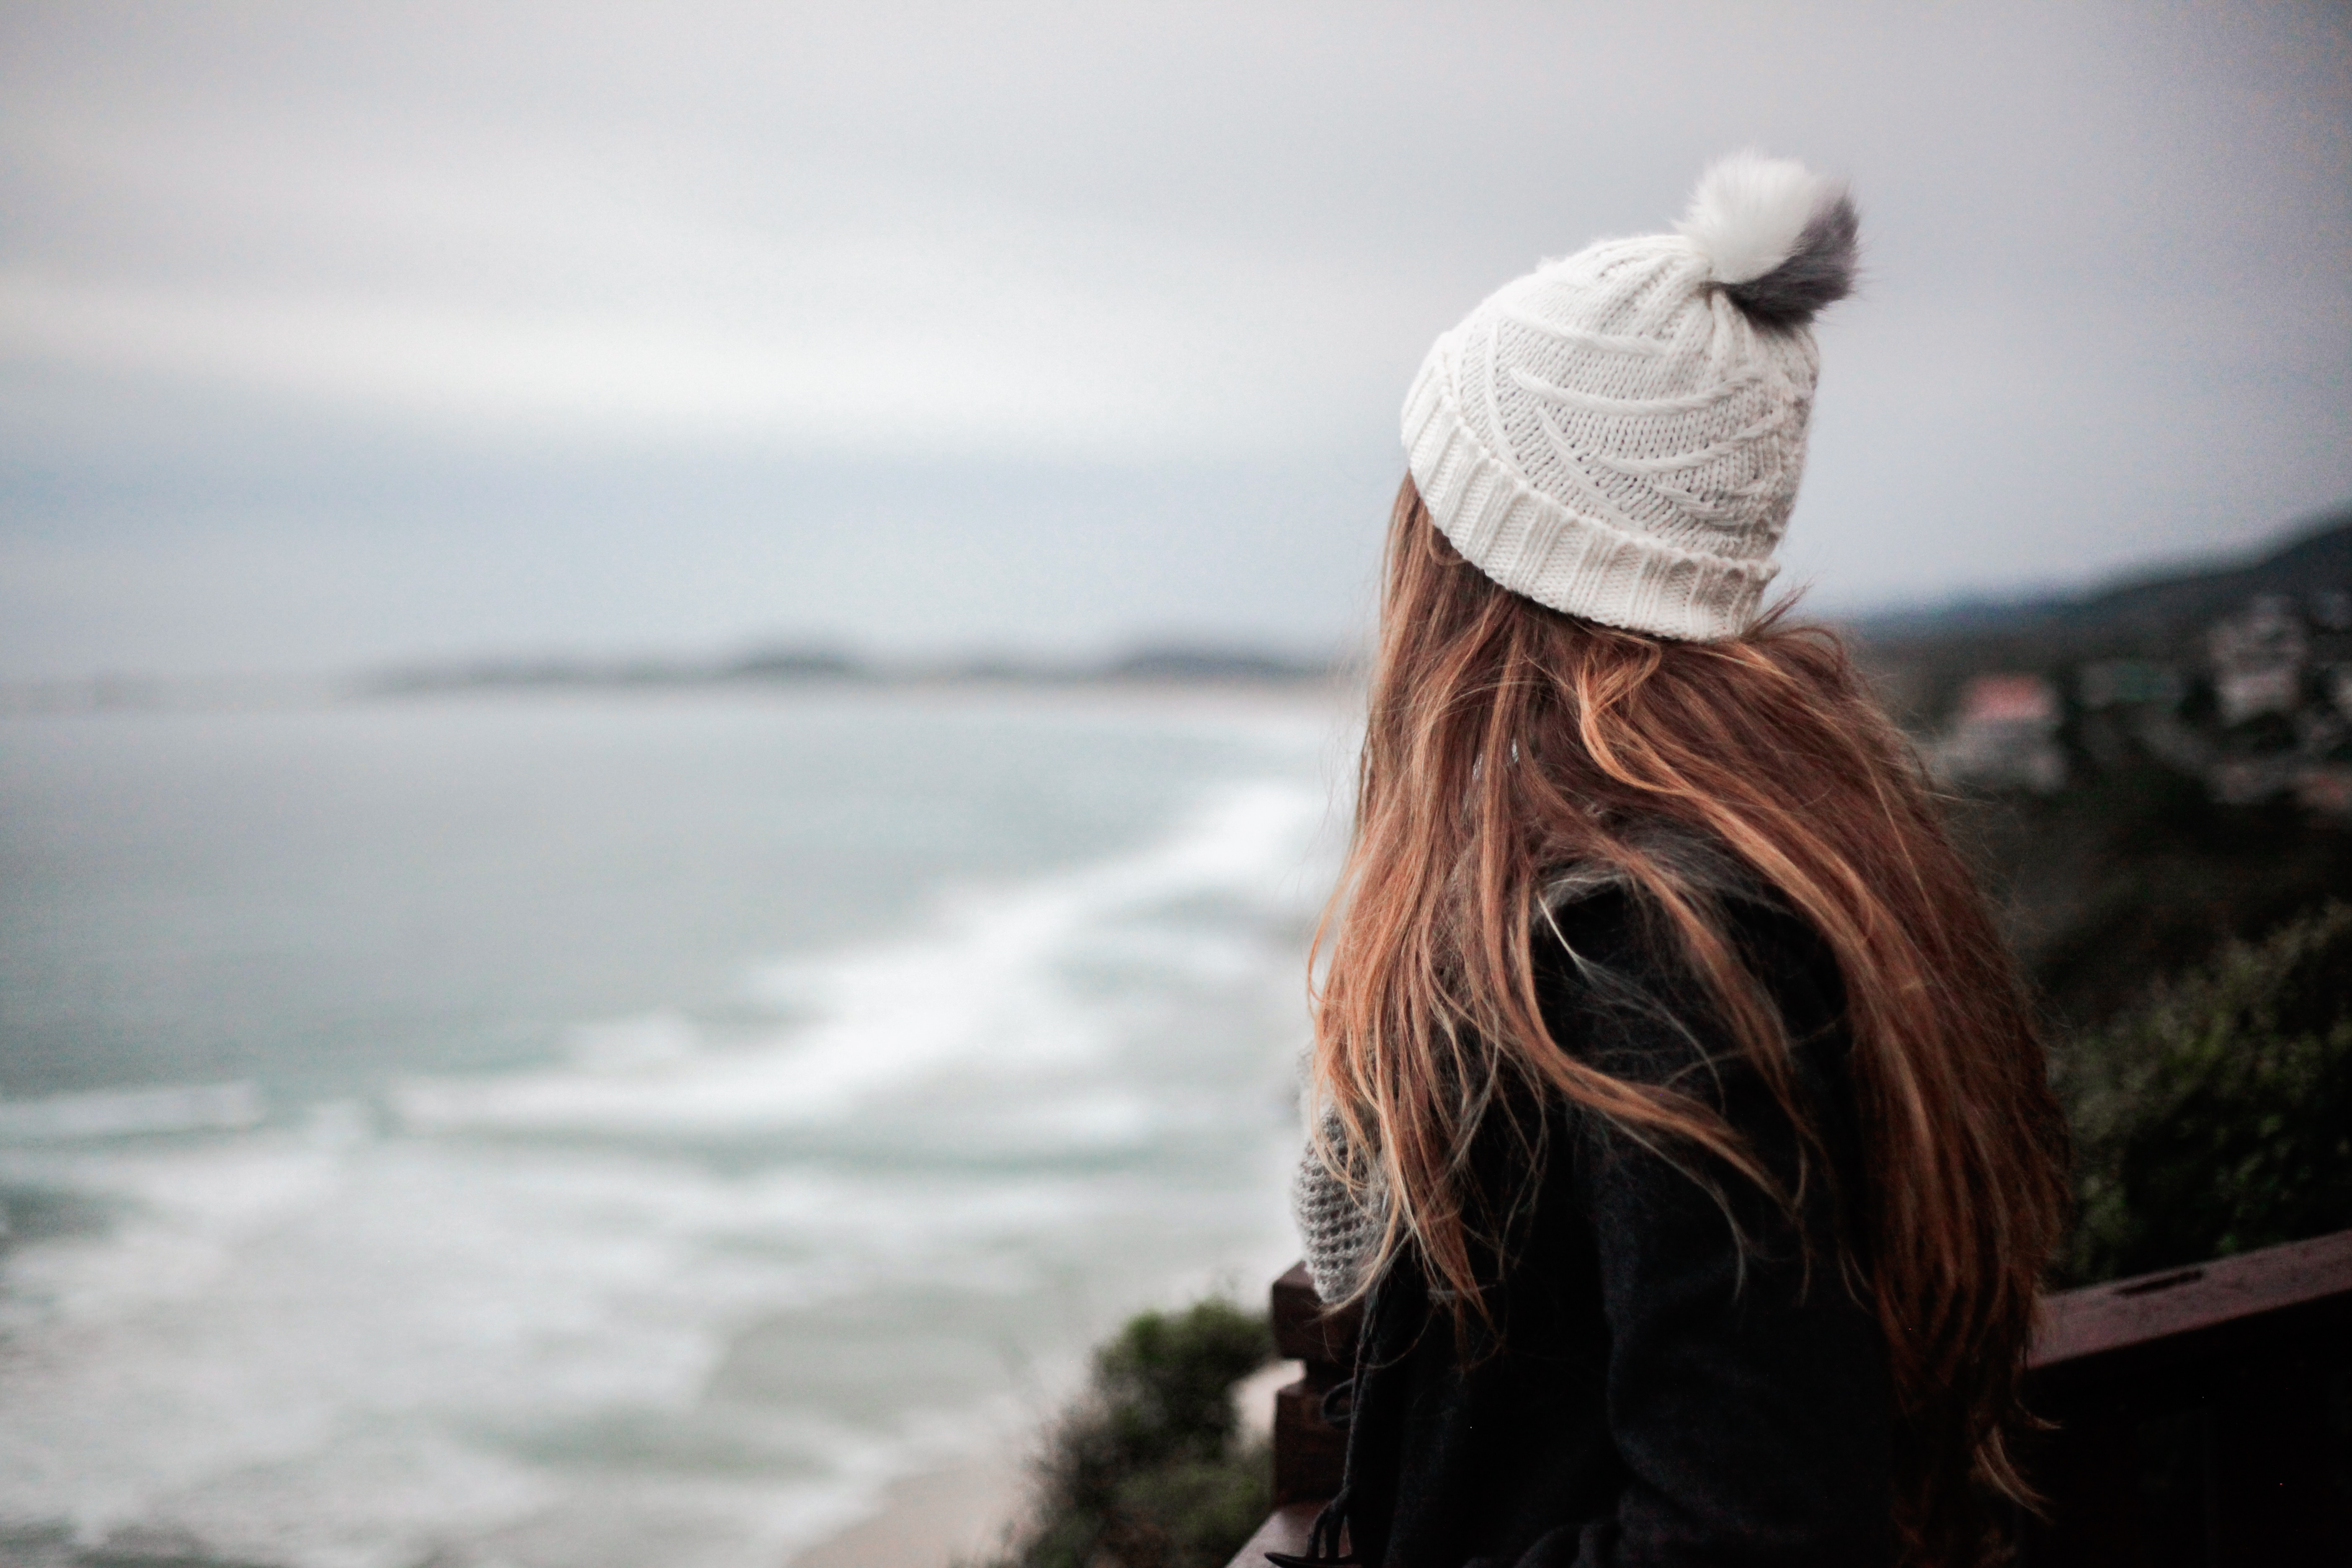 How to Cope With Being Rejected (Over and Over Again